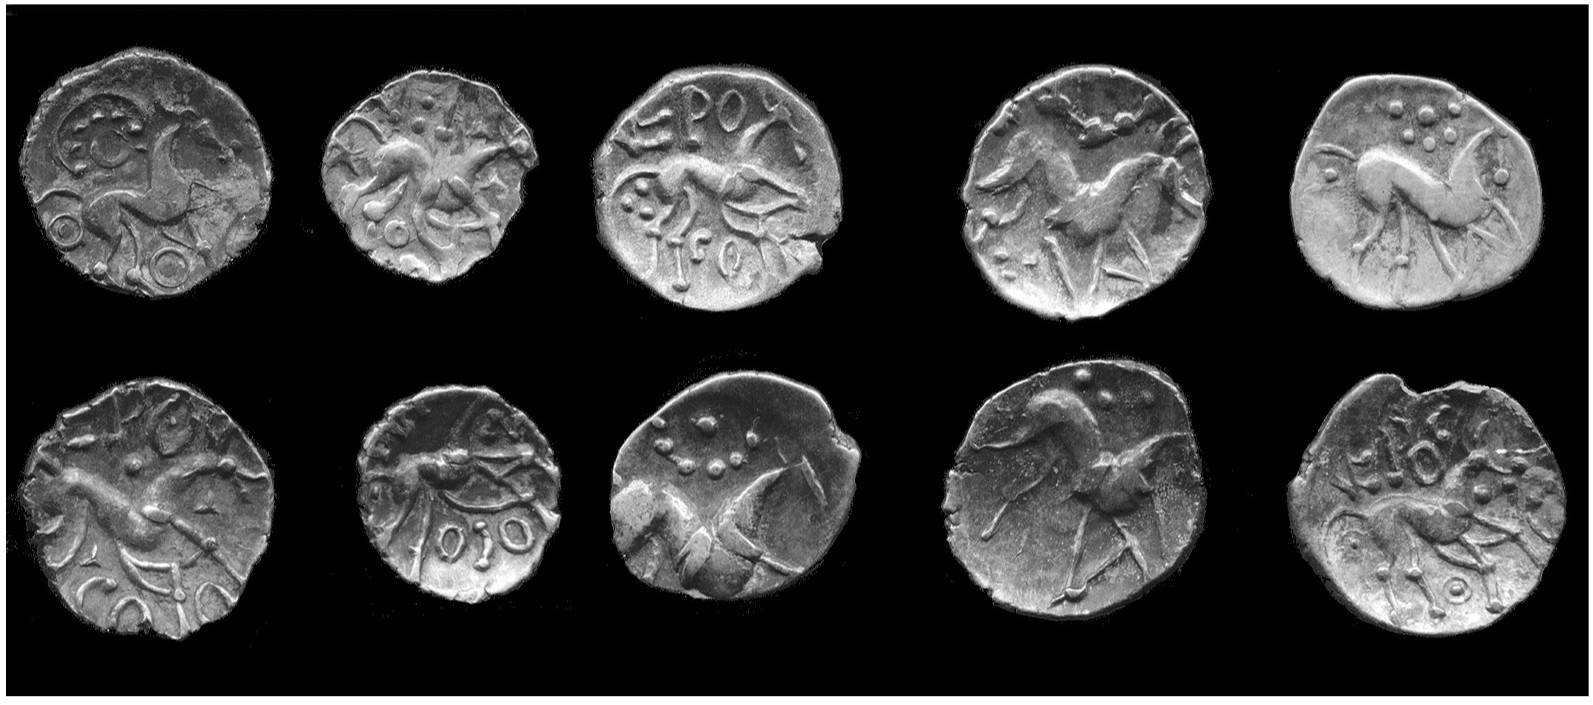 A black and white photo of ten coins, all stamped with the image of a horse surrounded by different arrangements of dots and characters.